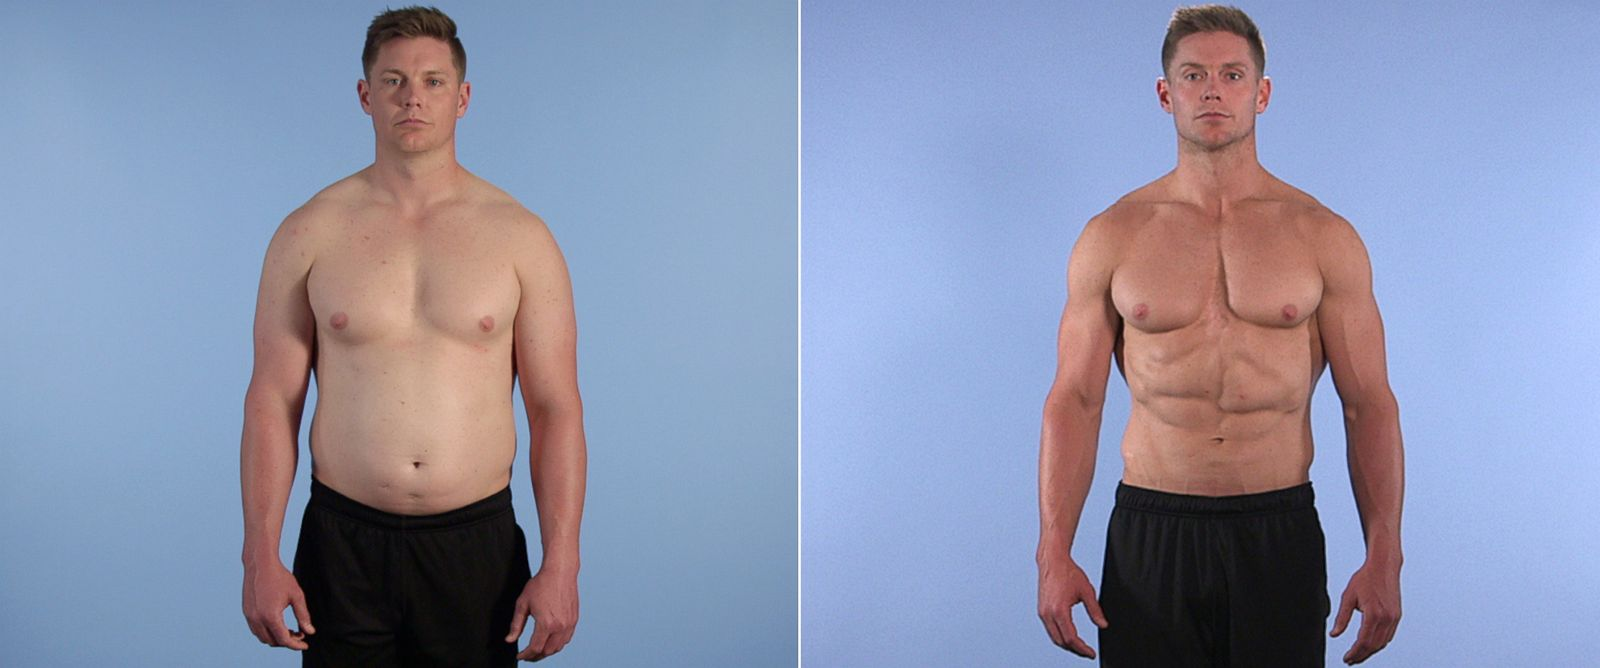 PHOTO: Trainer JJ Peterson went from weighing 184 pounds to 245 pounds in 120 days.